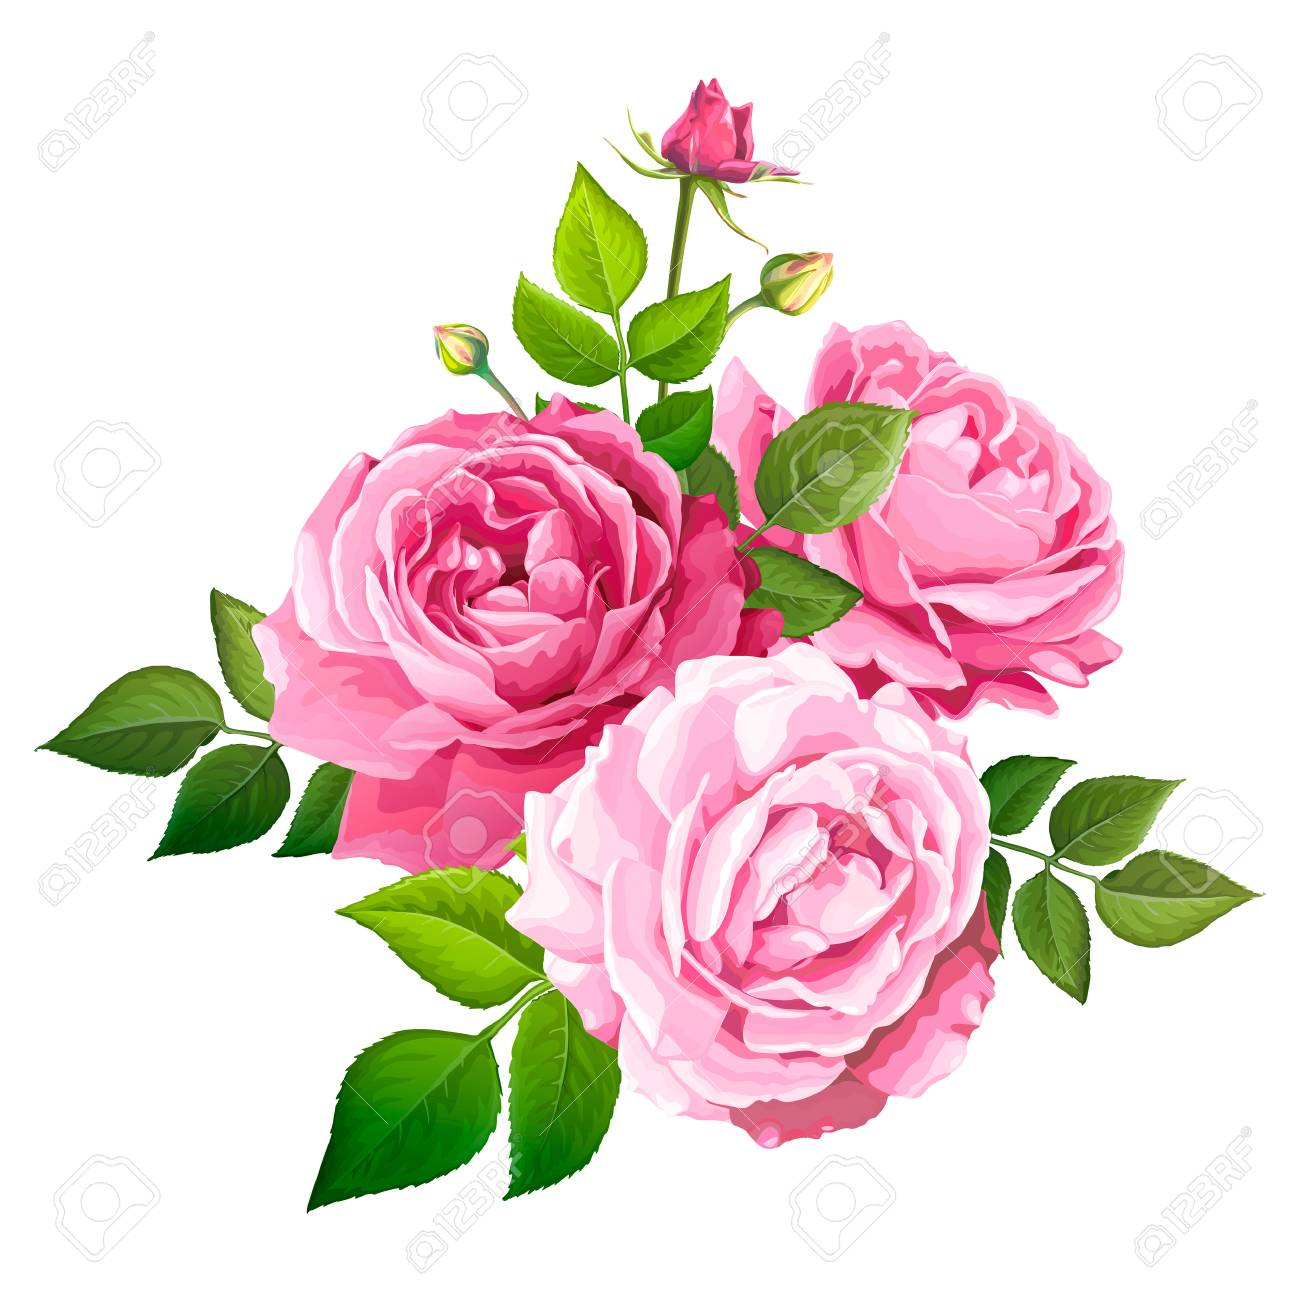 Beautiful Bouquet Flowers Of Pink Blooming Roses With Leaves Royalty Free Cliparts Vectors And Stock Illustration Image 127180363